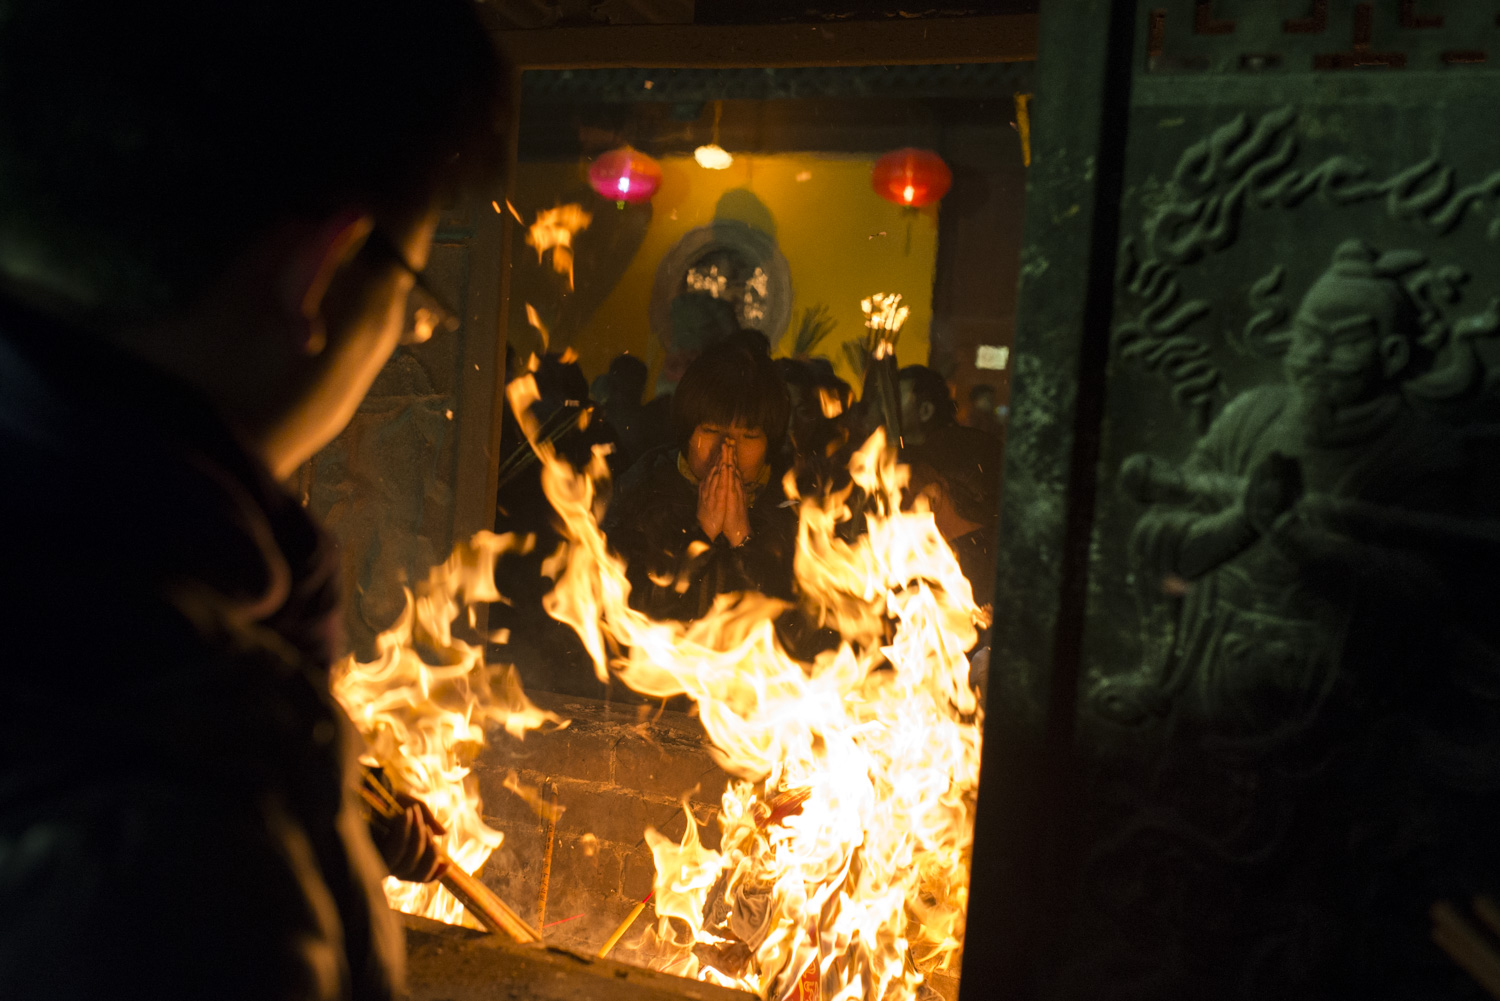 A woman is deep in prayer between the flames at Longhua Temple.